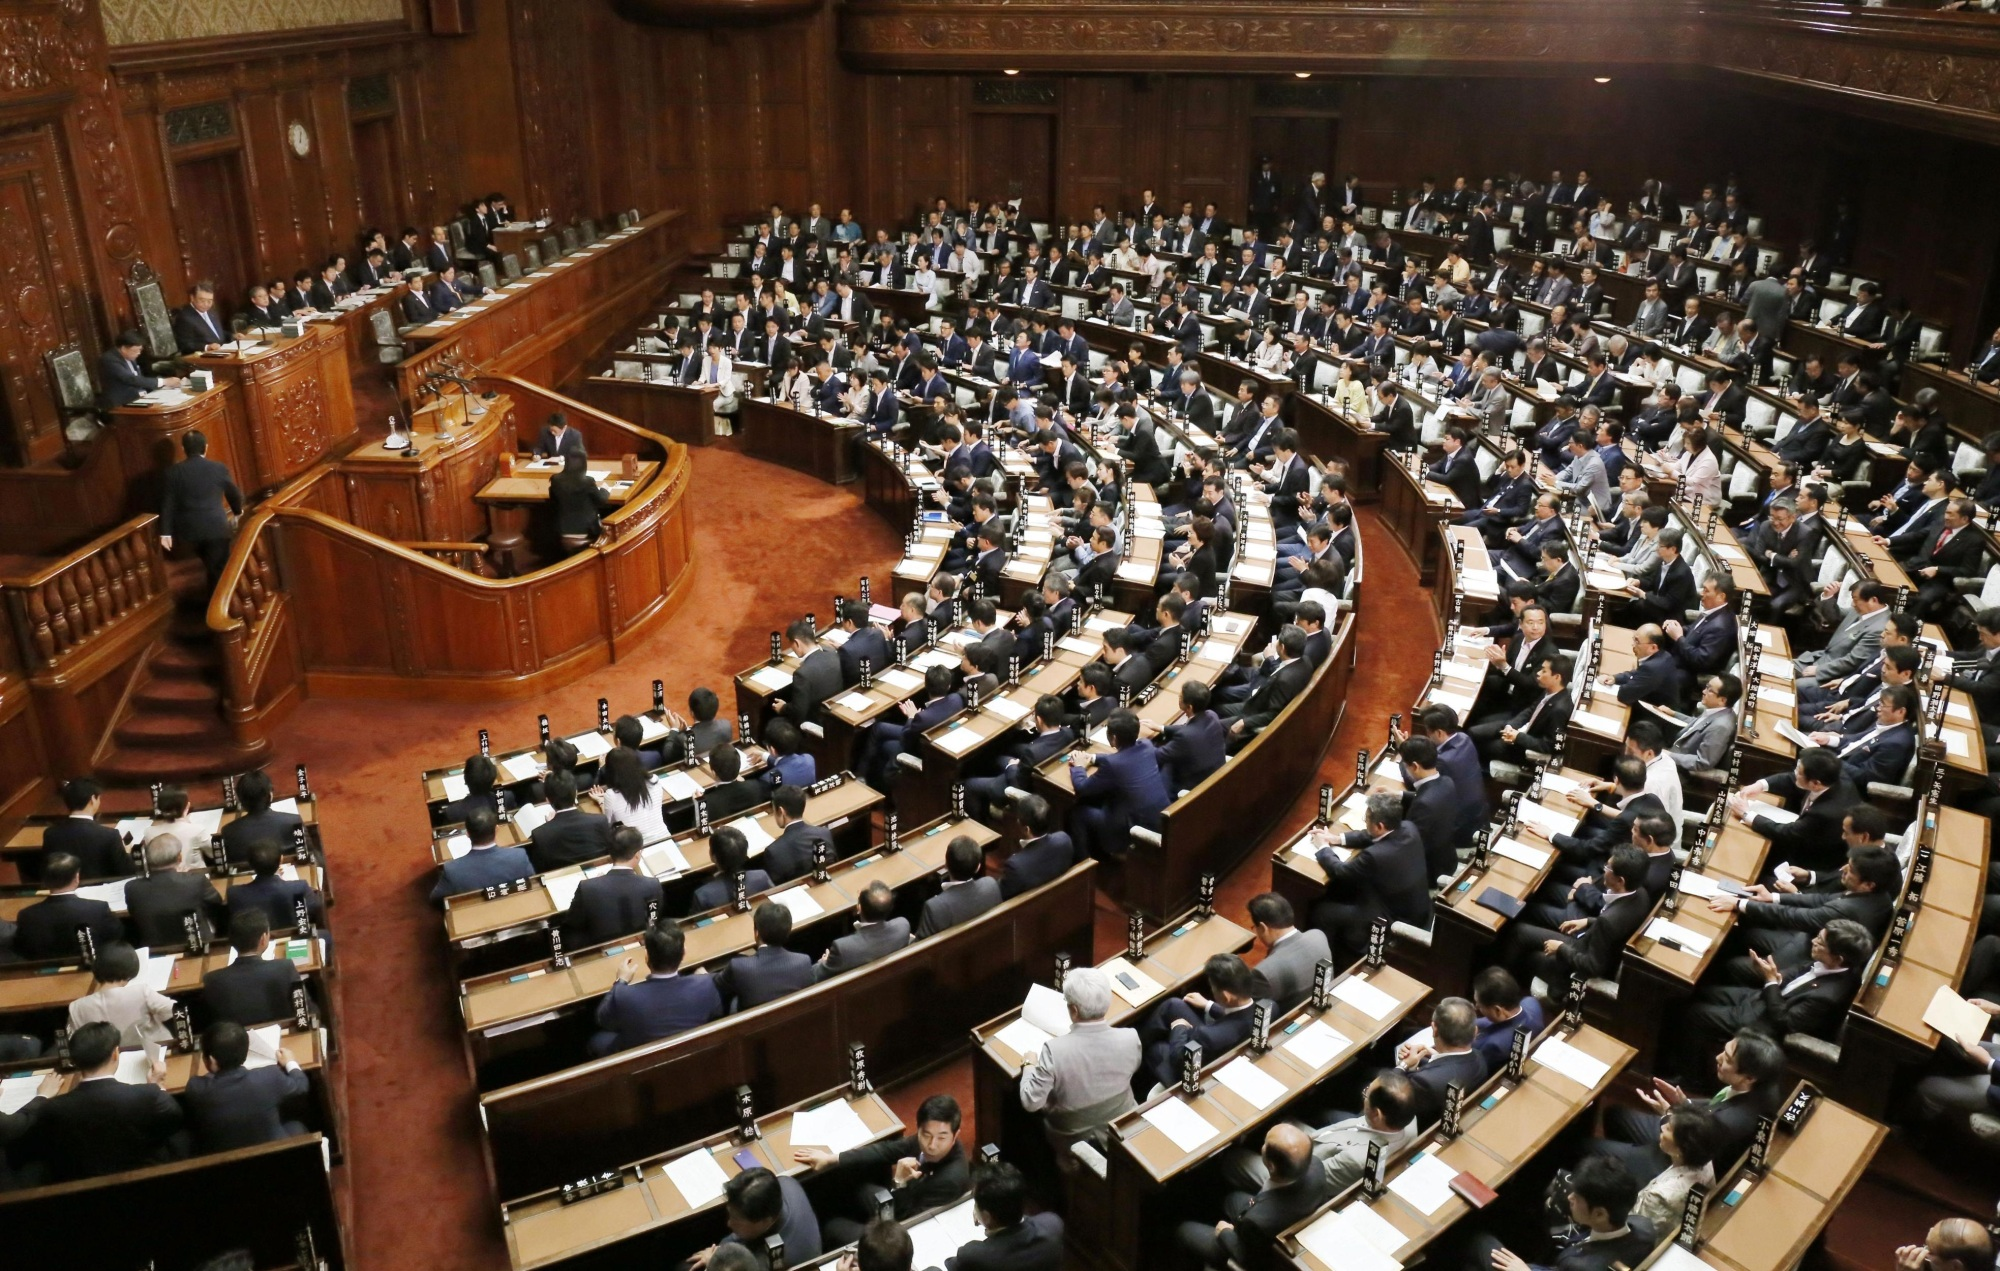 Lawmakers attend a plenary session at the Lower House on Tuesday afternoon. Ruling bloc sources said the government and its coalition partners are now considering extending the current ordinary Diet session to the end of June or early July to secure the passage of bills on labor reform and casinos. | KYODO